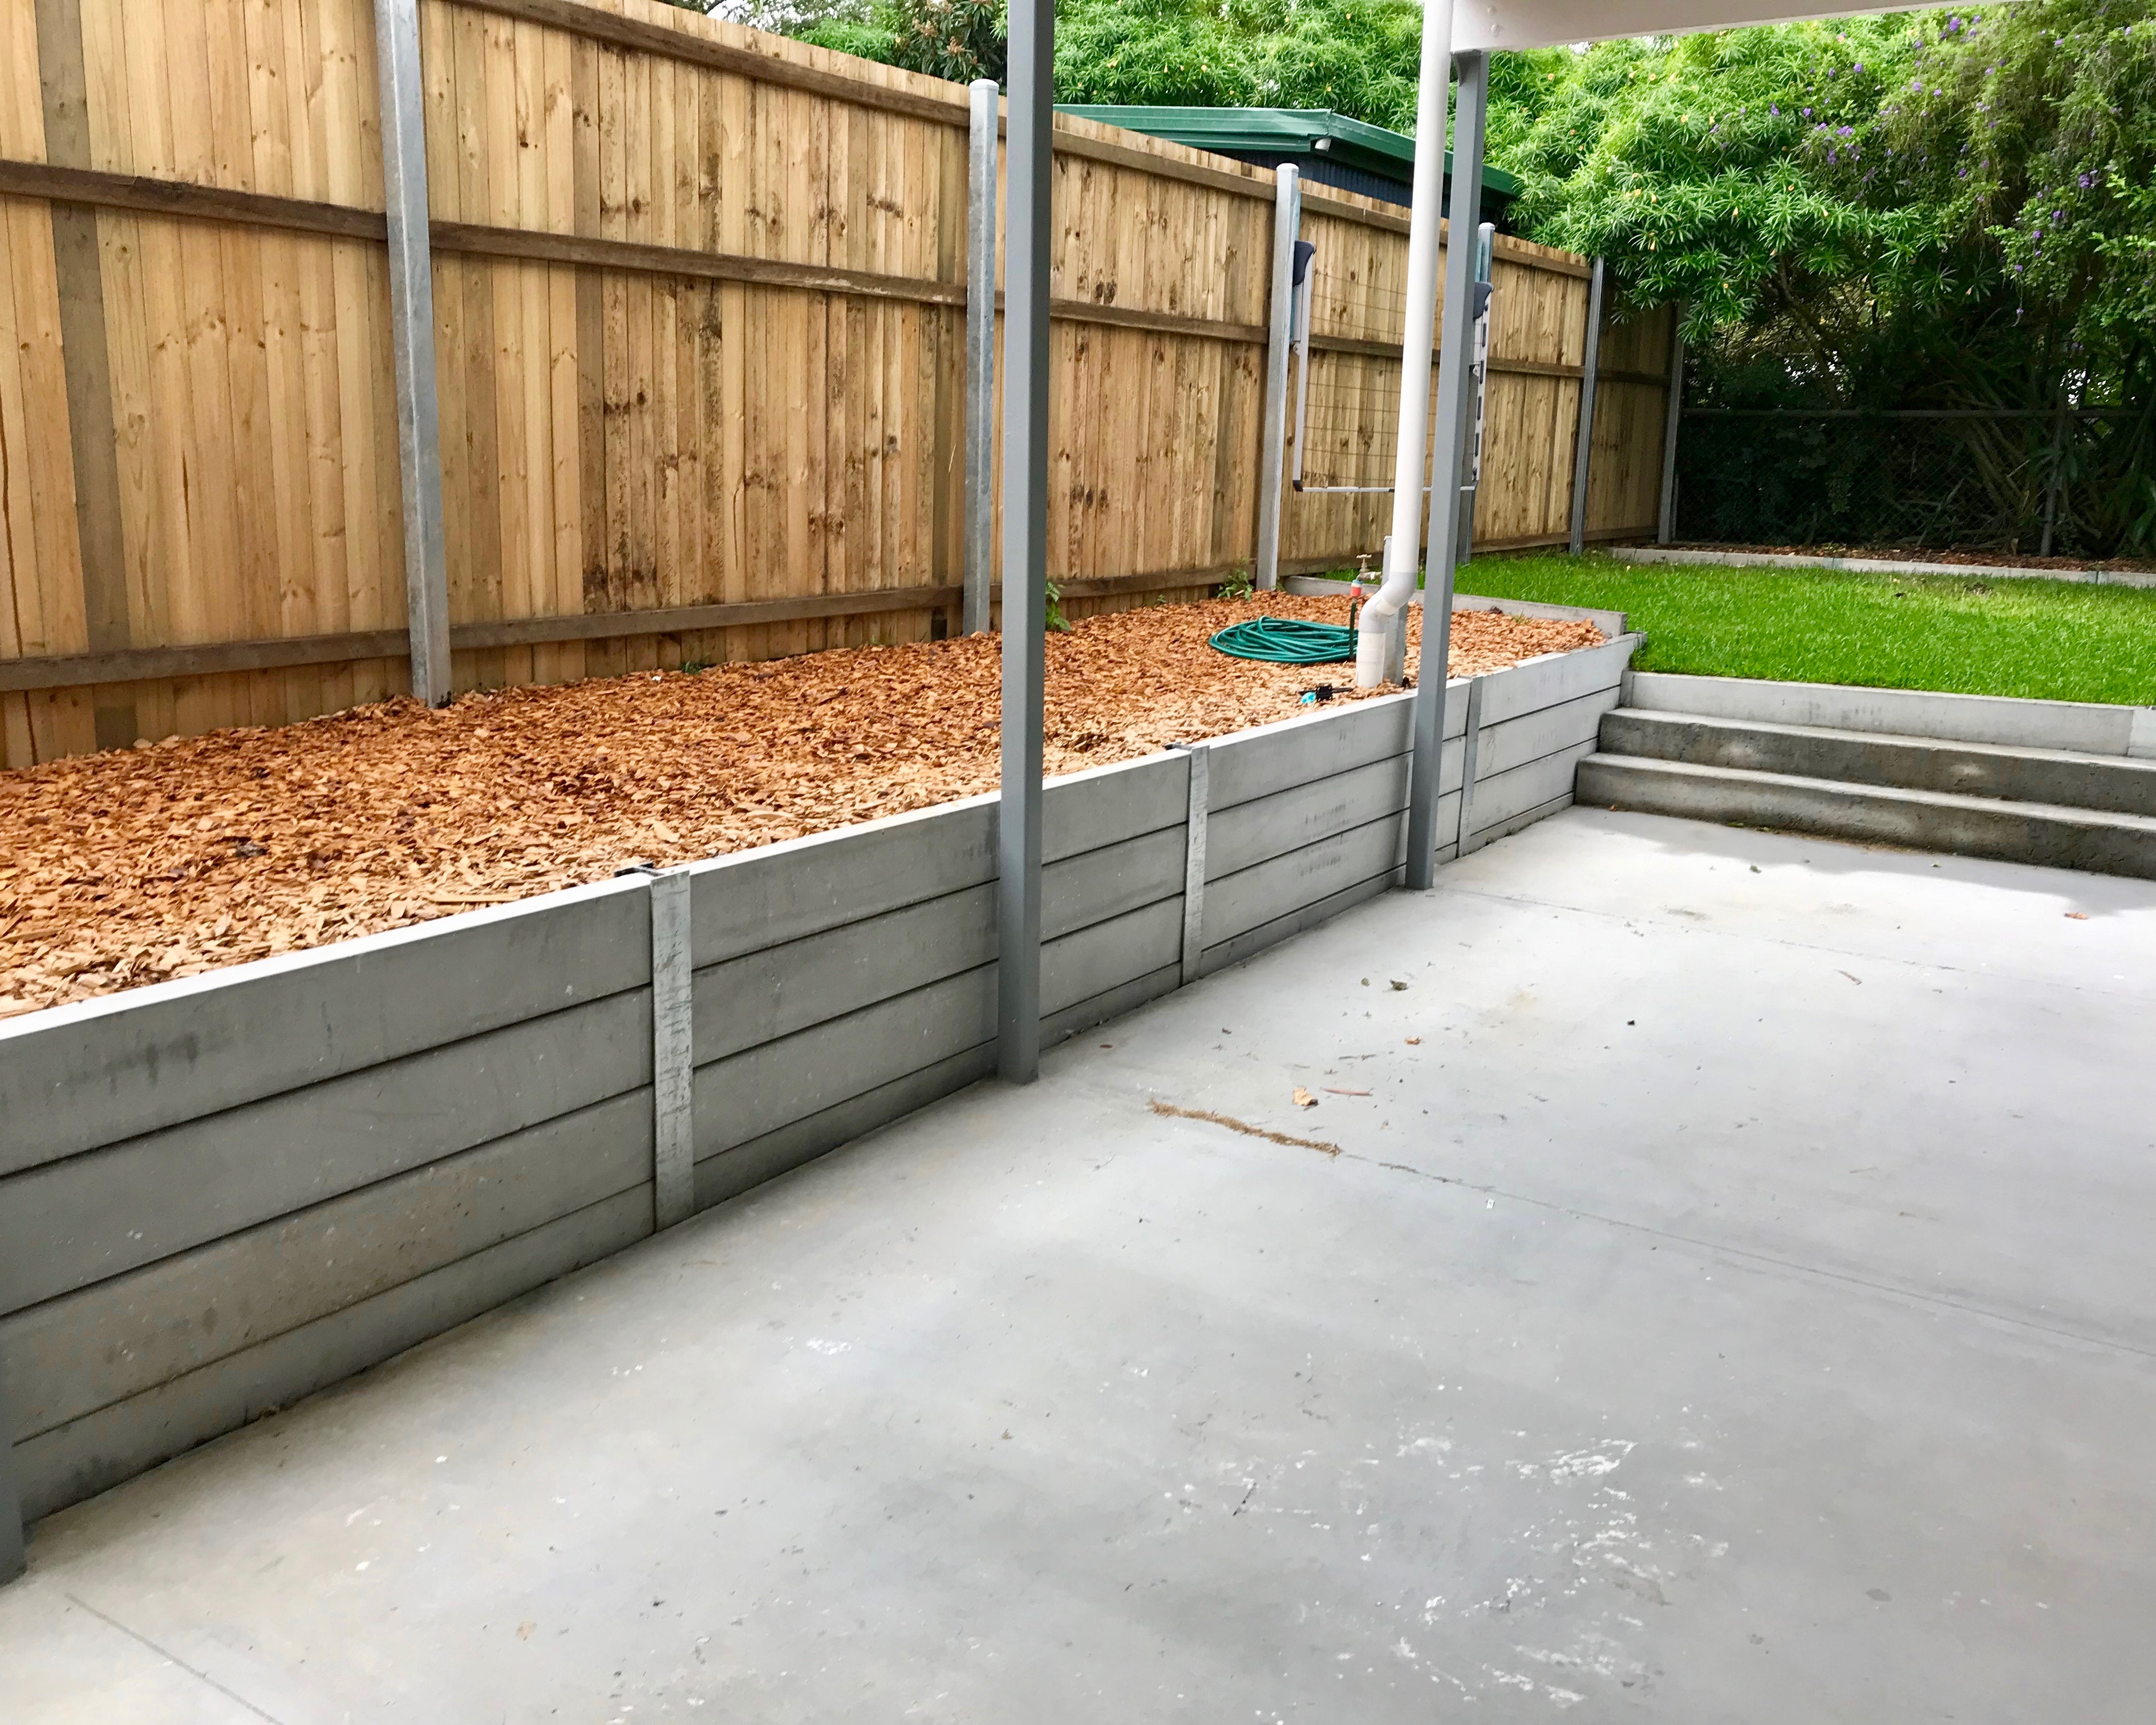 Retaining Walls in Assocation with Raising Houses   Raise My House